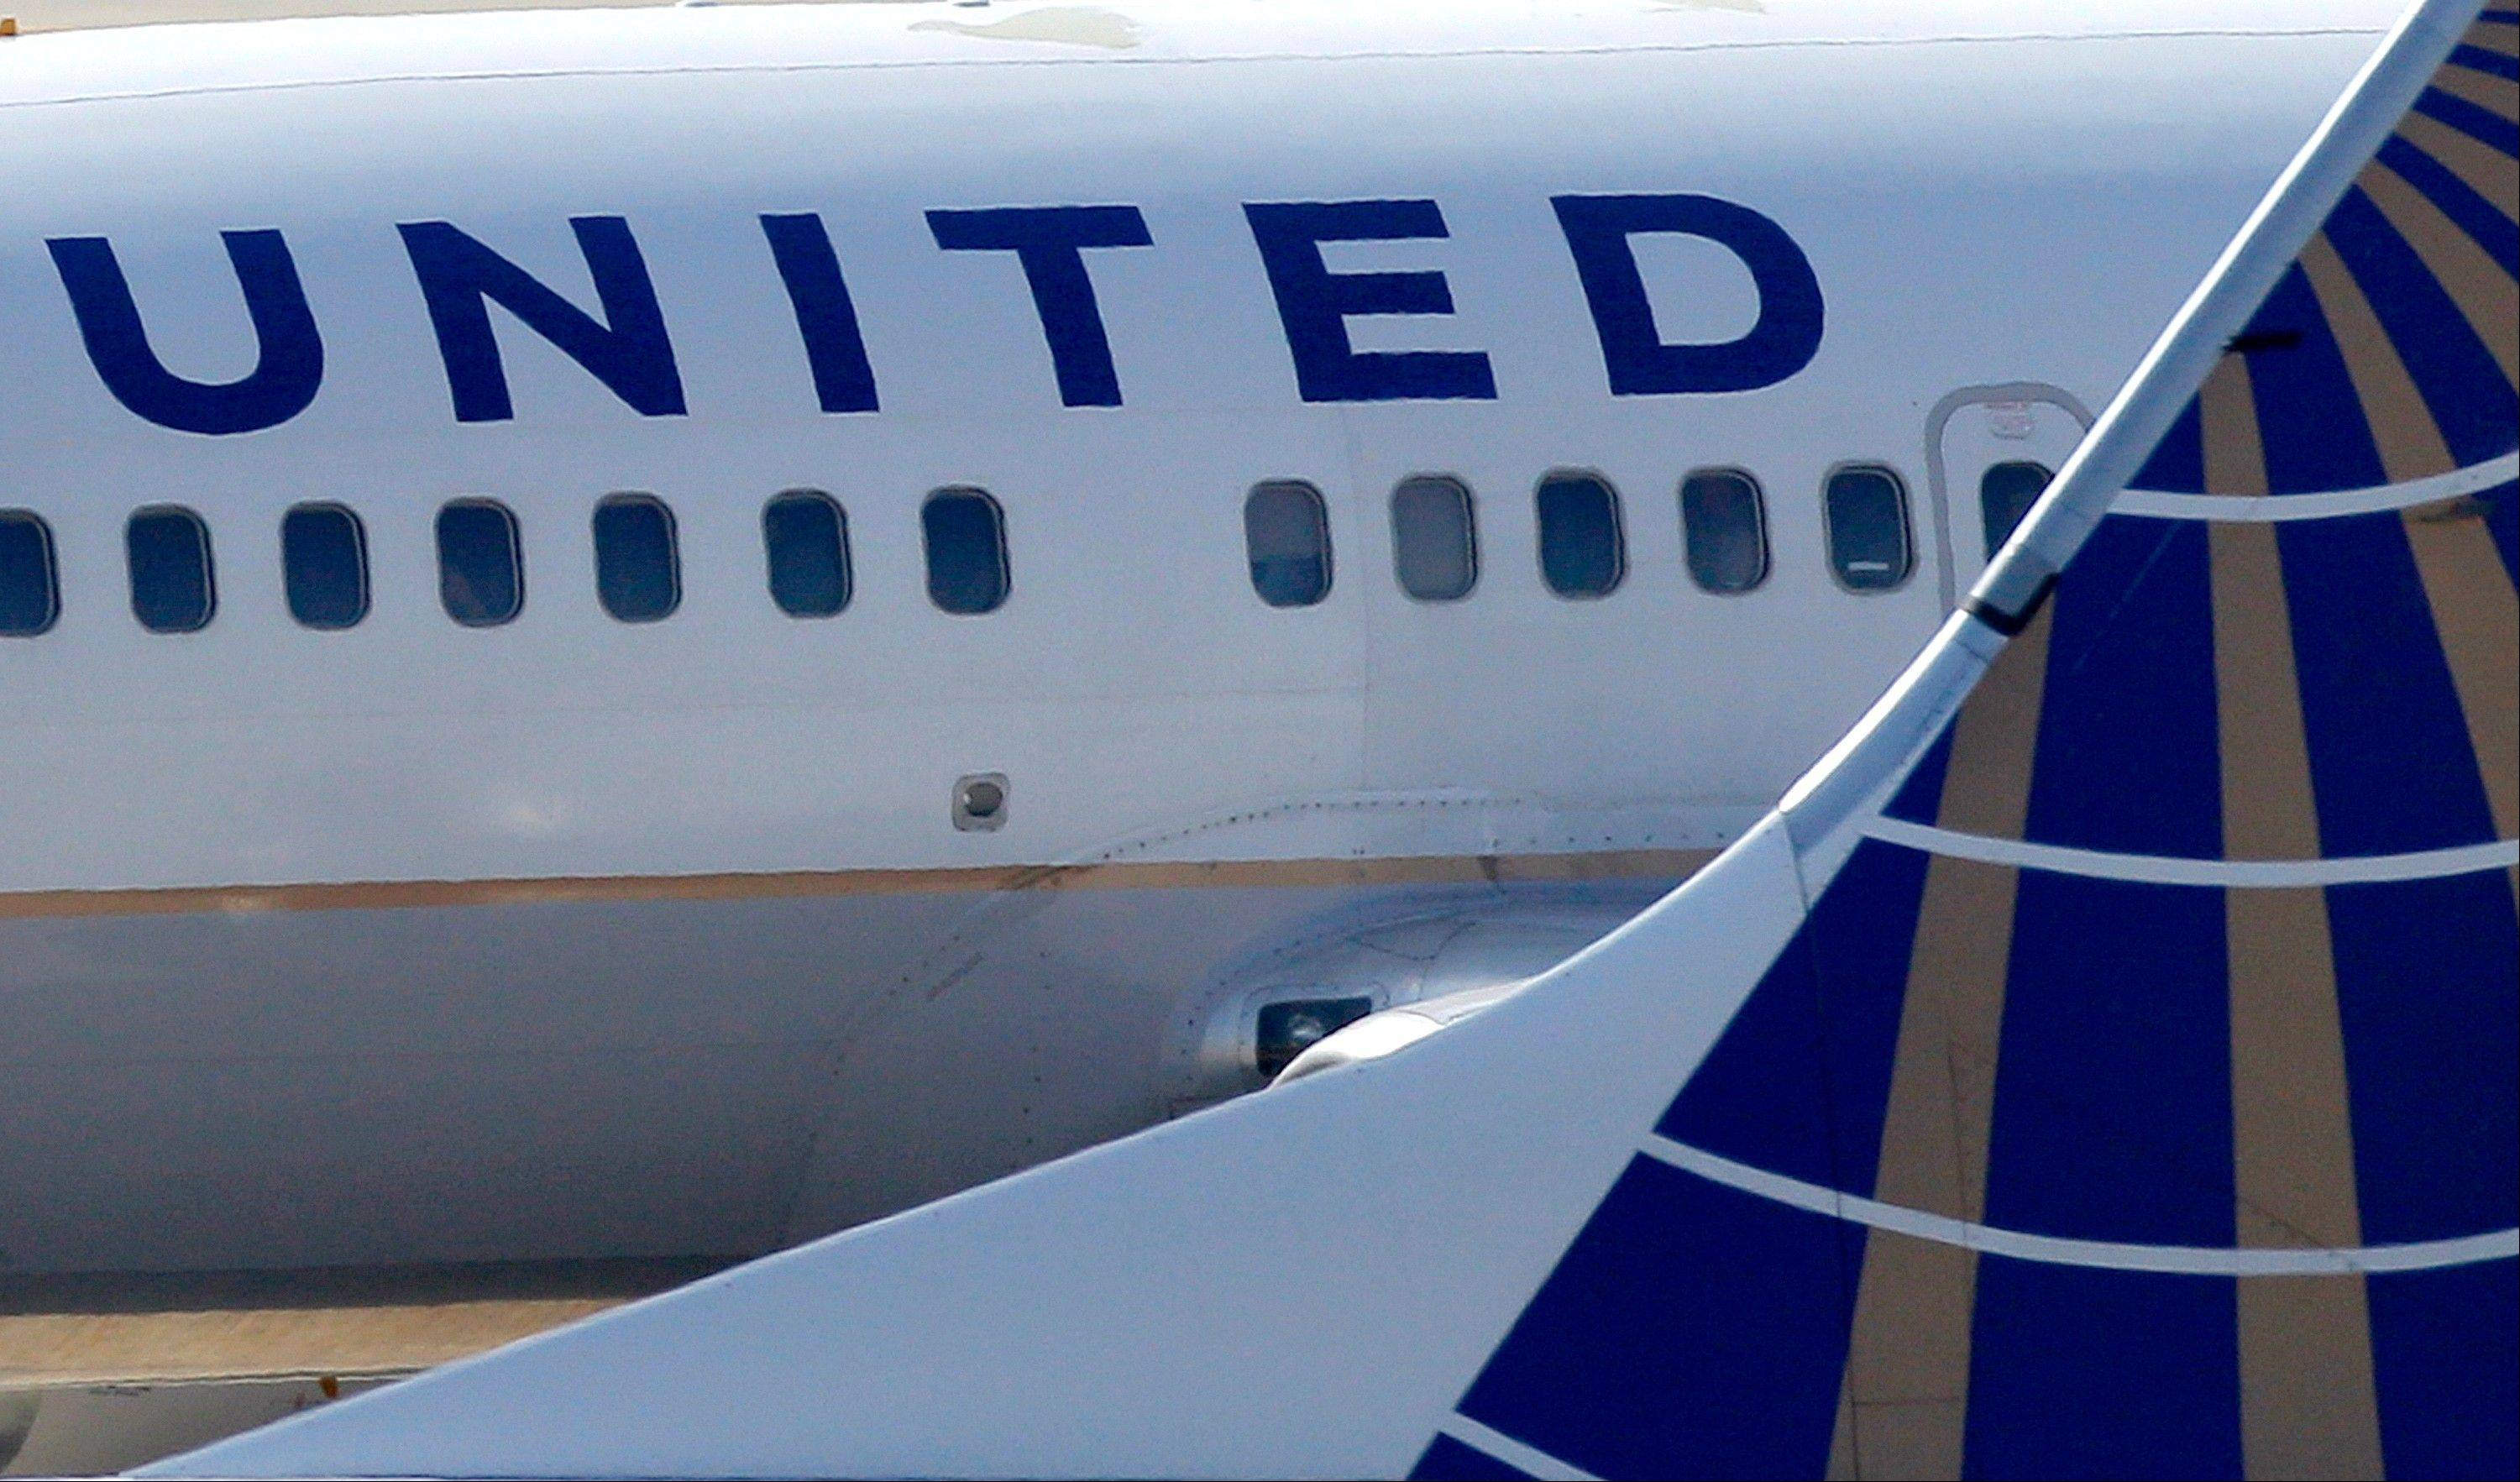 United Airlines took another step to combine its frequent flier program with Continental�s. It�s boosting rewards for the most expensive tickets and adding an expiration date, which will be new for Continental fliers.